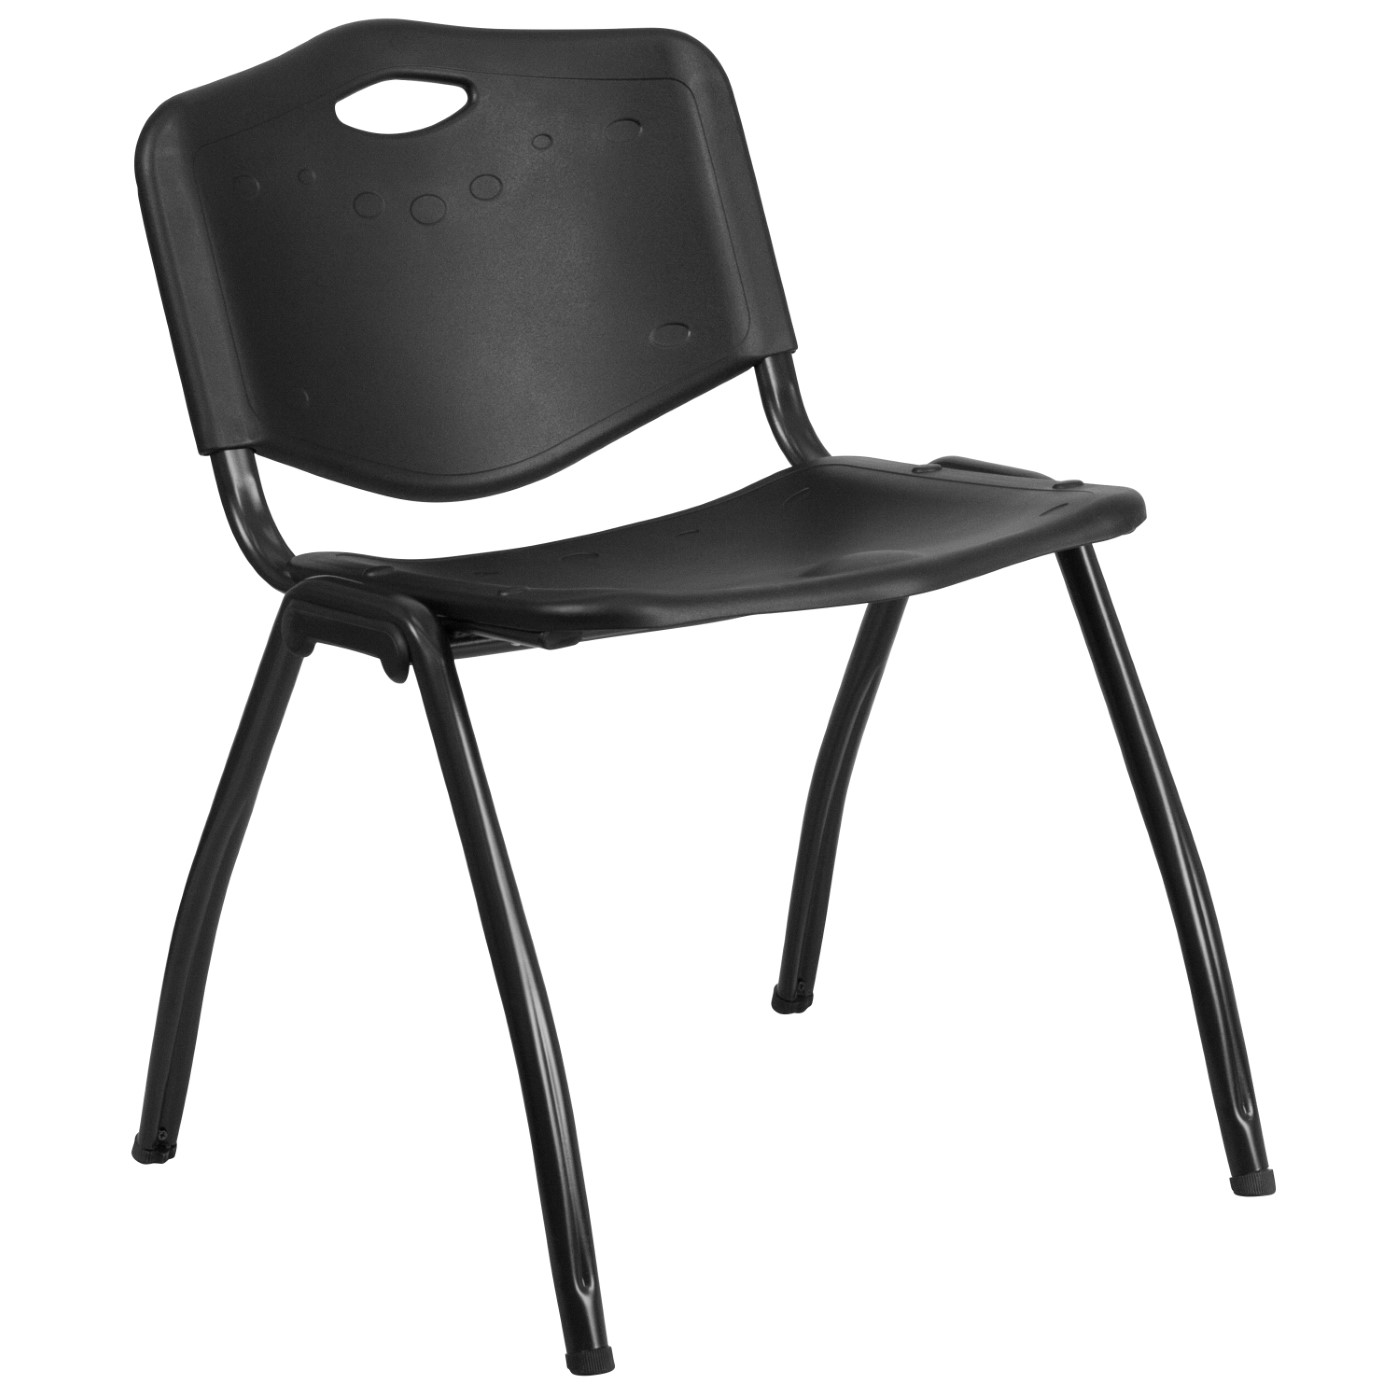 TOUGH ENOUGH Series 880 lb. Capacity Black Plastic Stack Chair